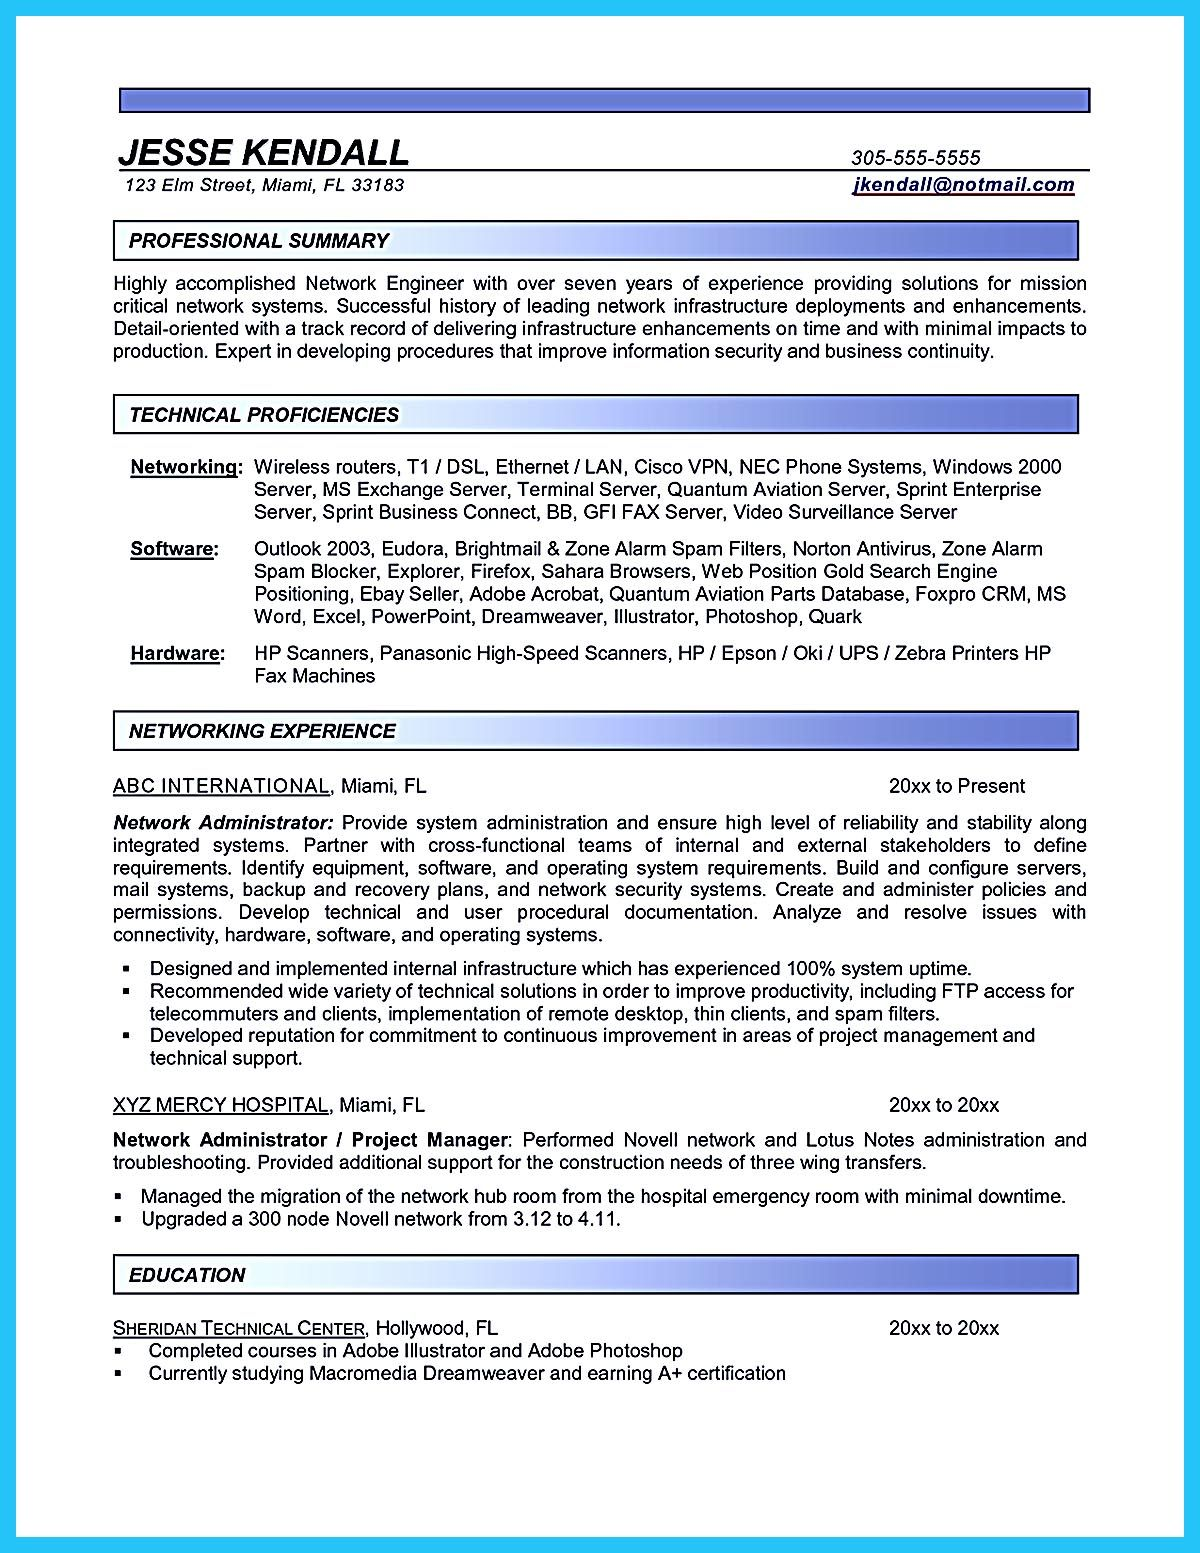 Resume Strengths Accounts Receivable Resume Presents Both Skills And Also